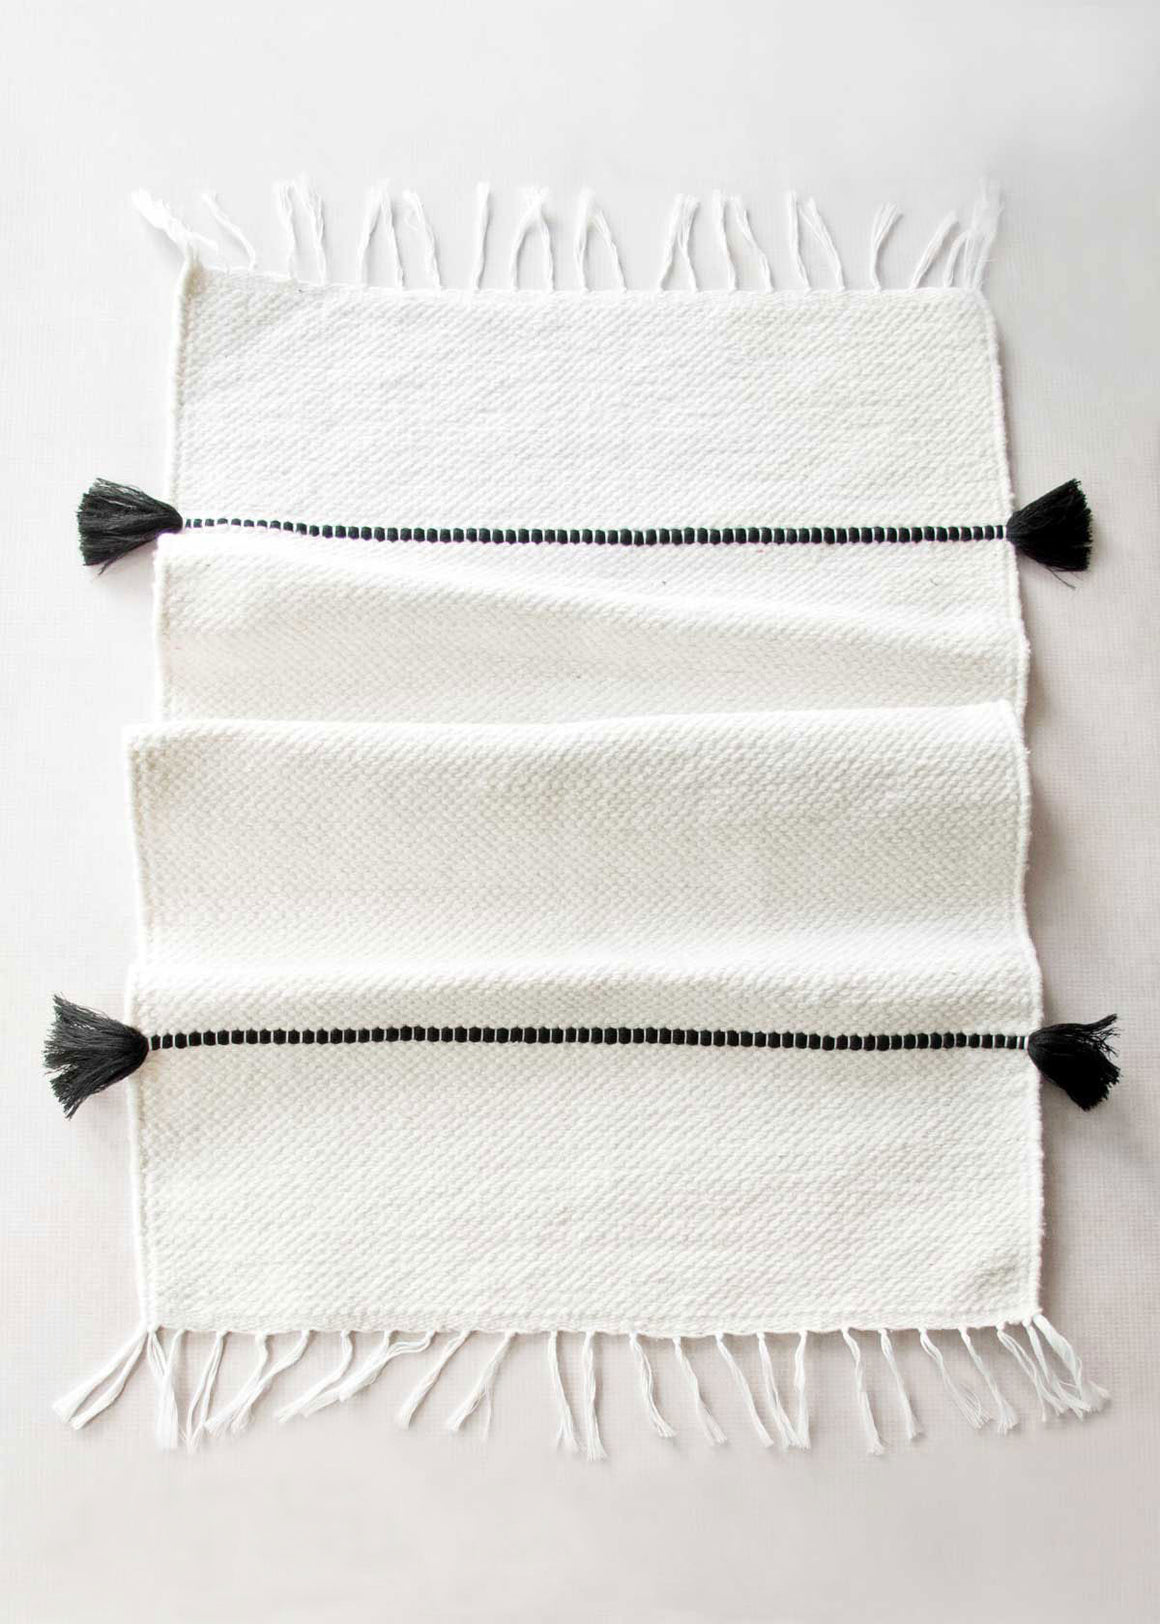 Abanja Ribbon Bath Mat